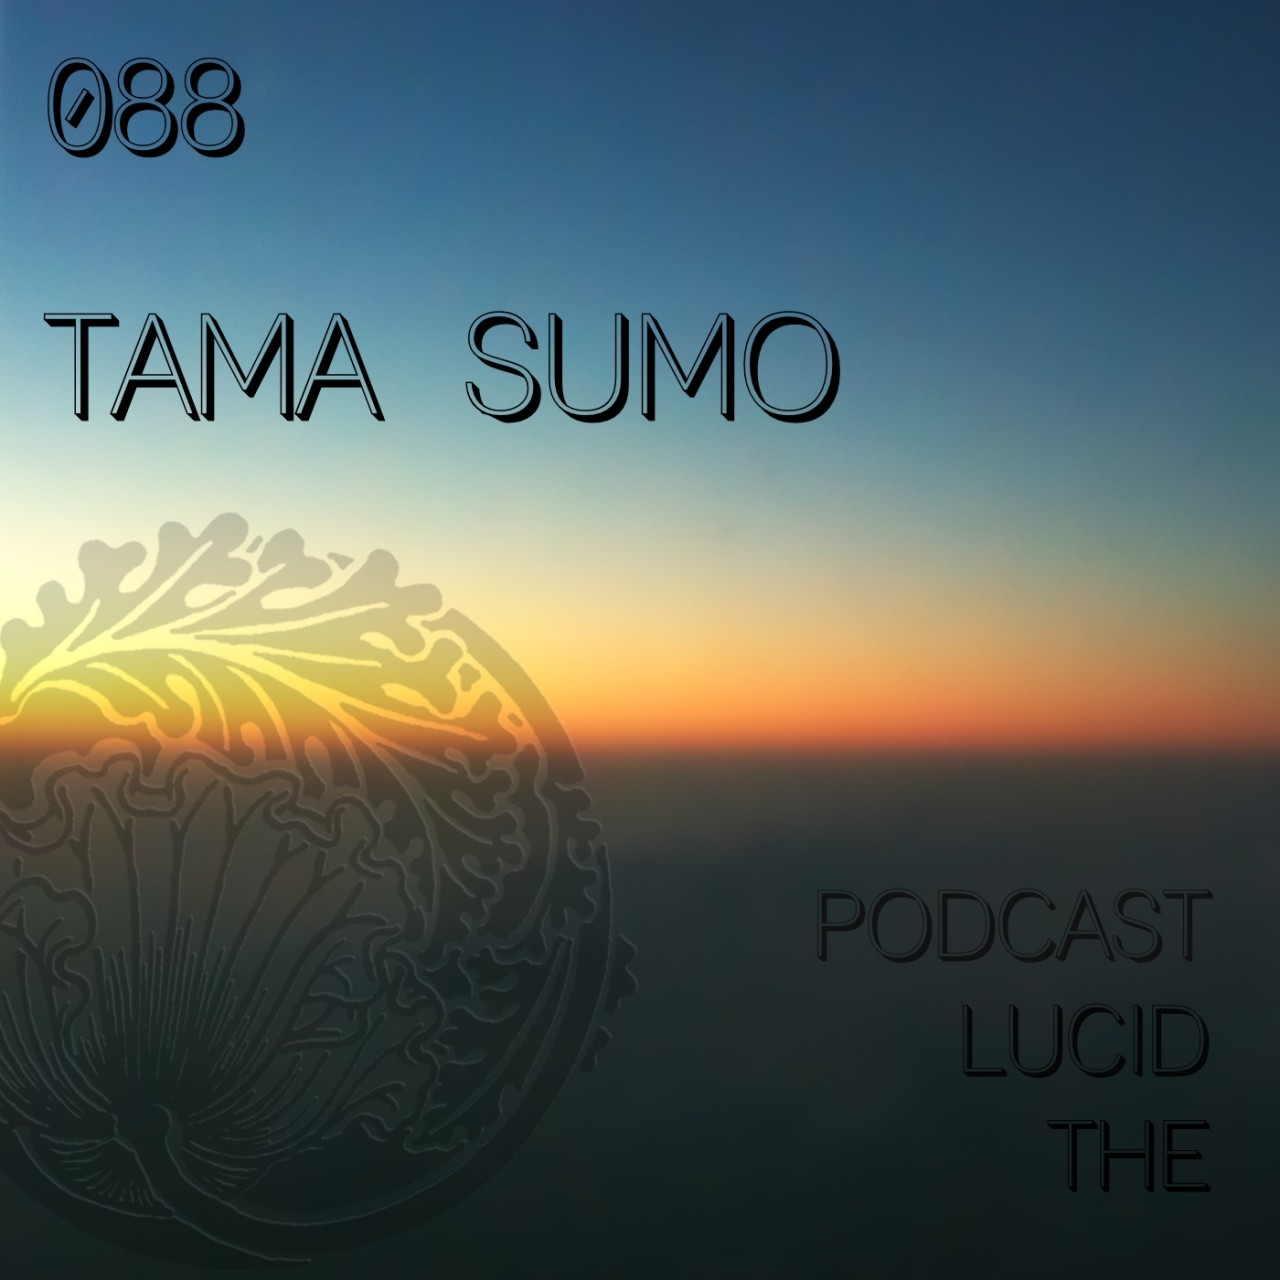 The Lucid Podcast 088 Tama Sumo